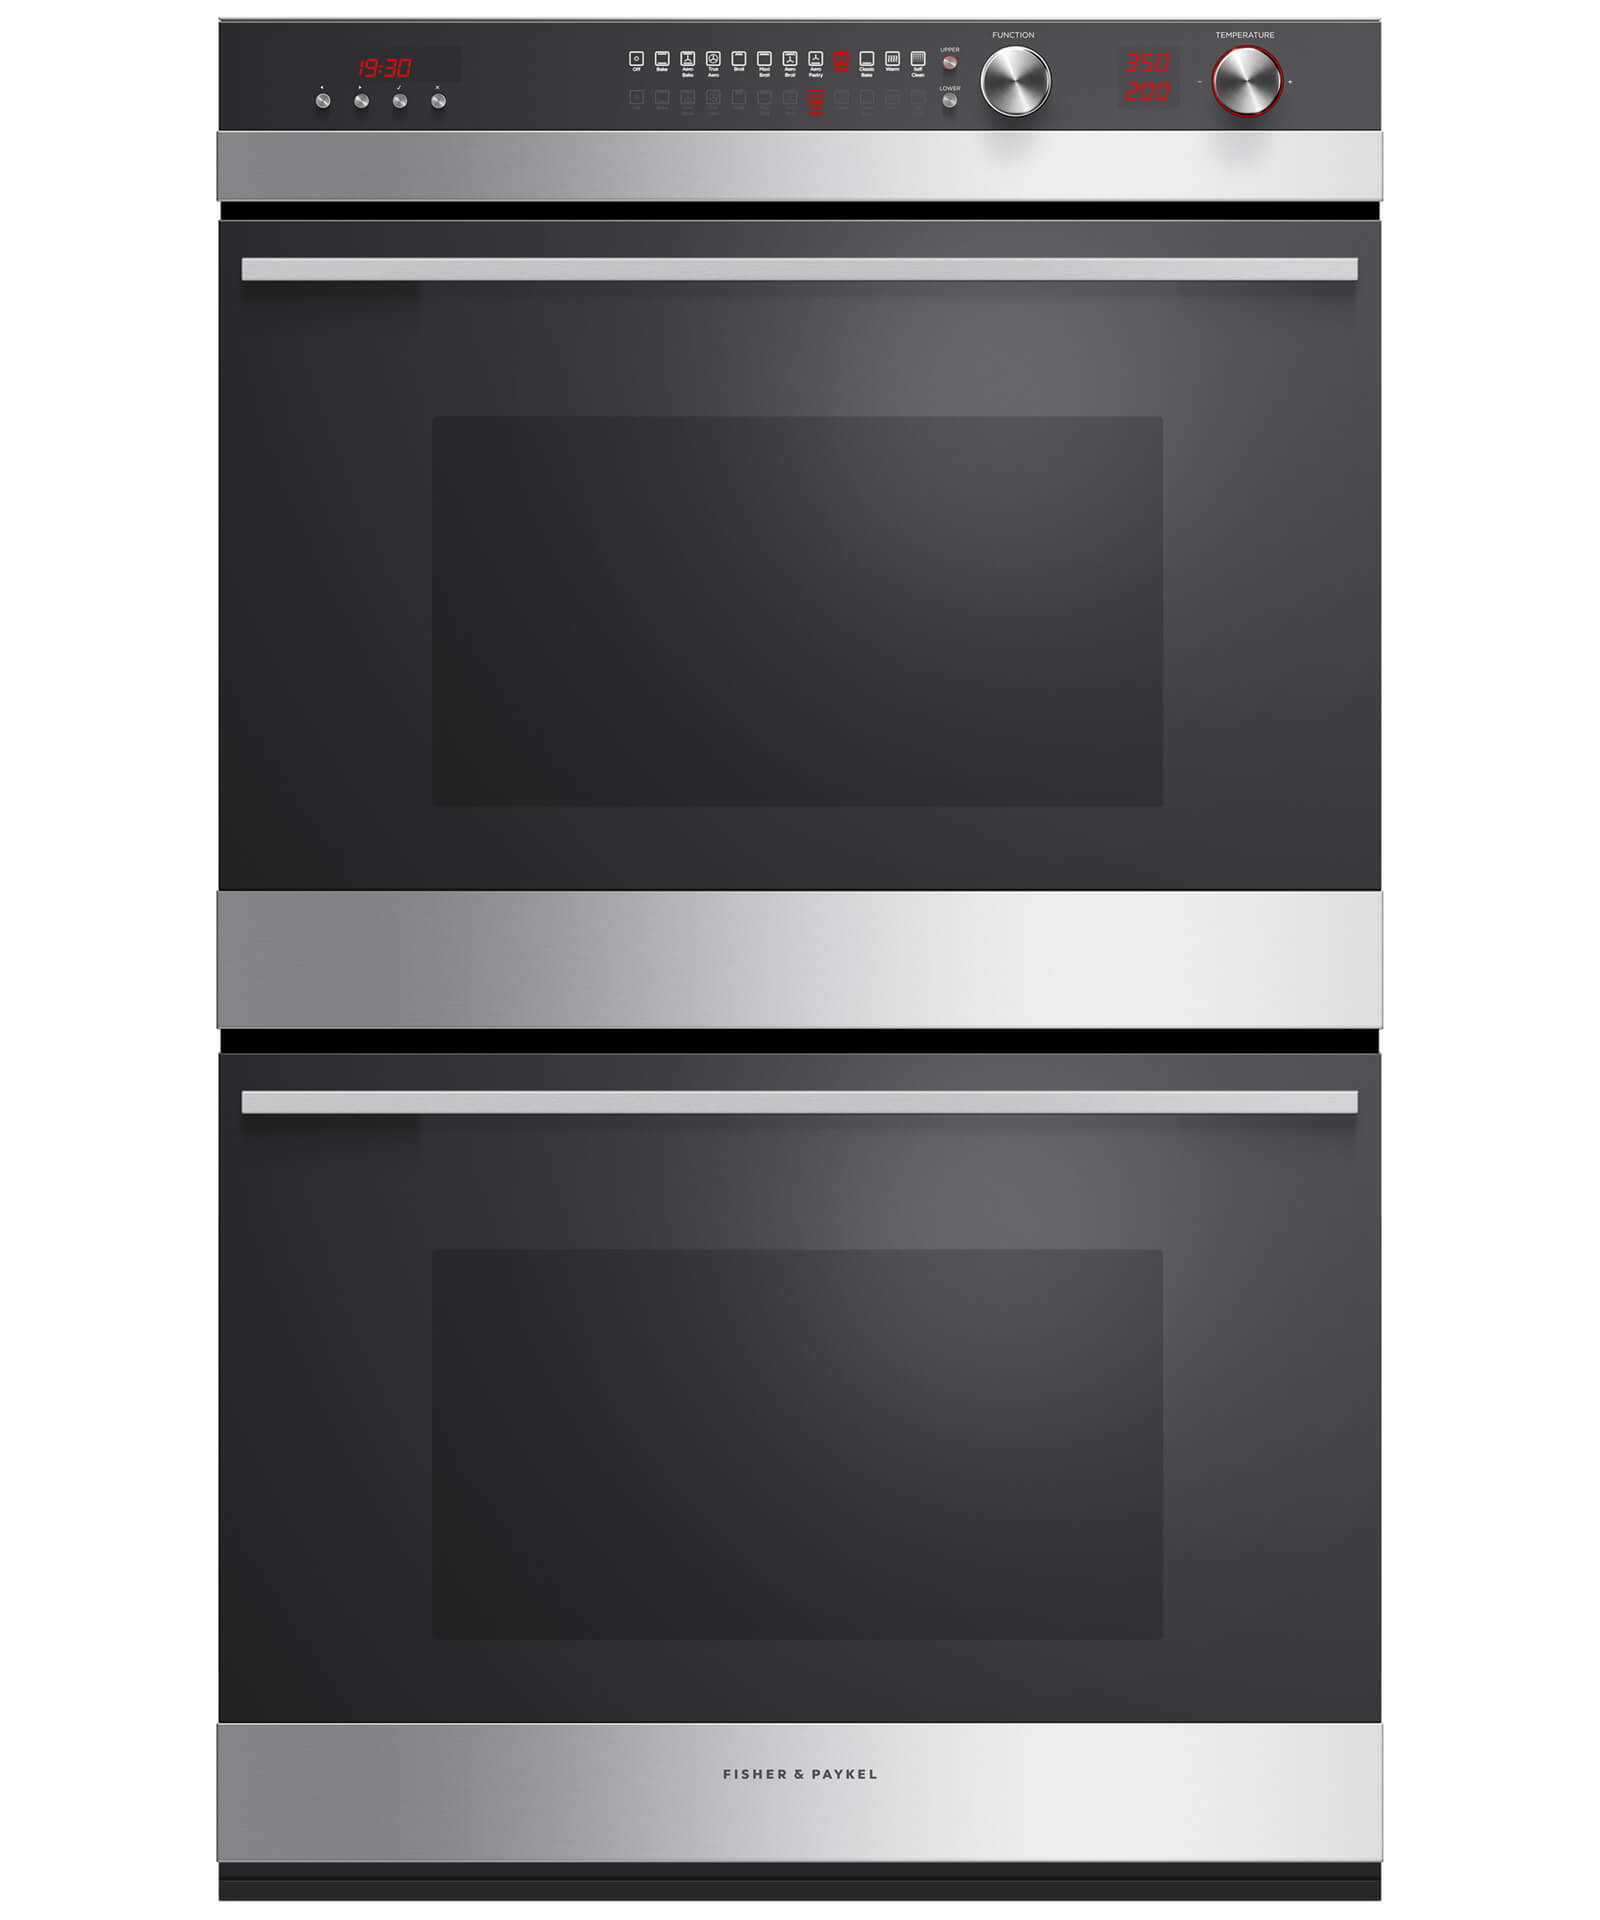 Fisher & Paykel 30&quote; 11 Function Double Built-in Oven